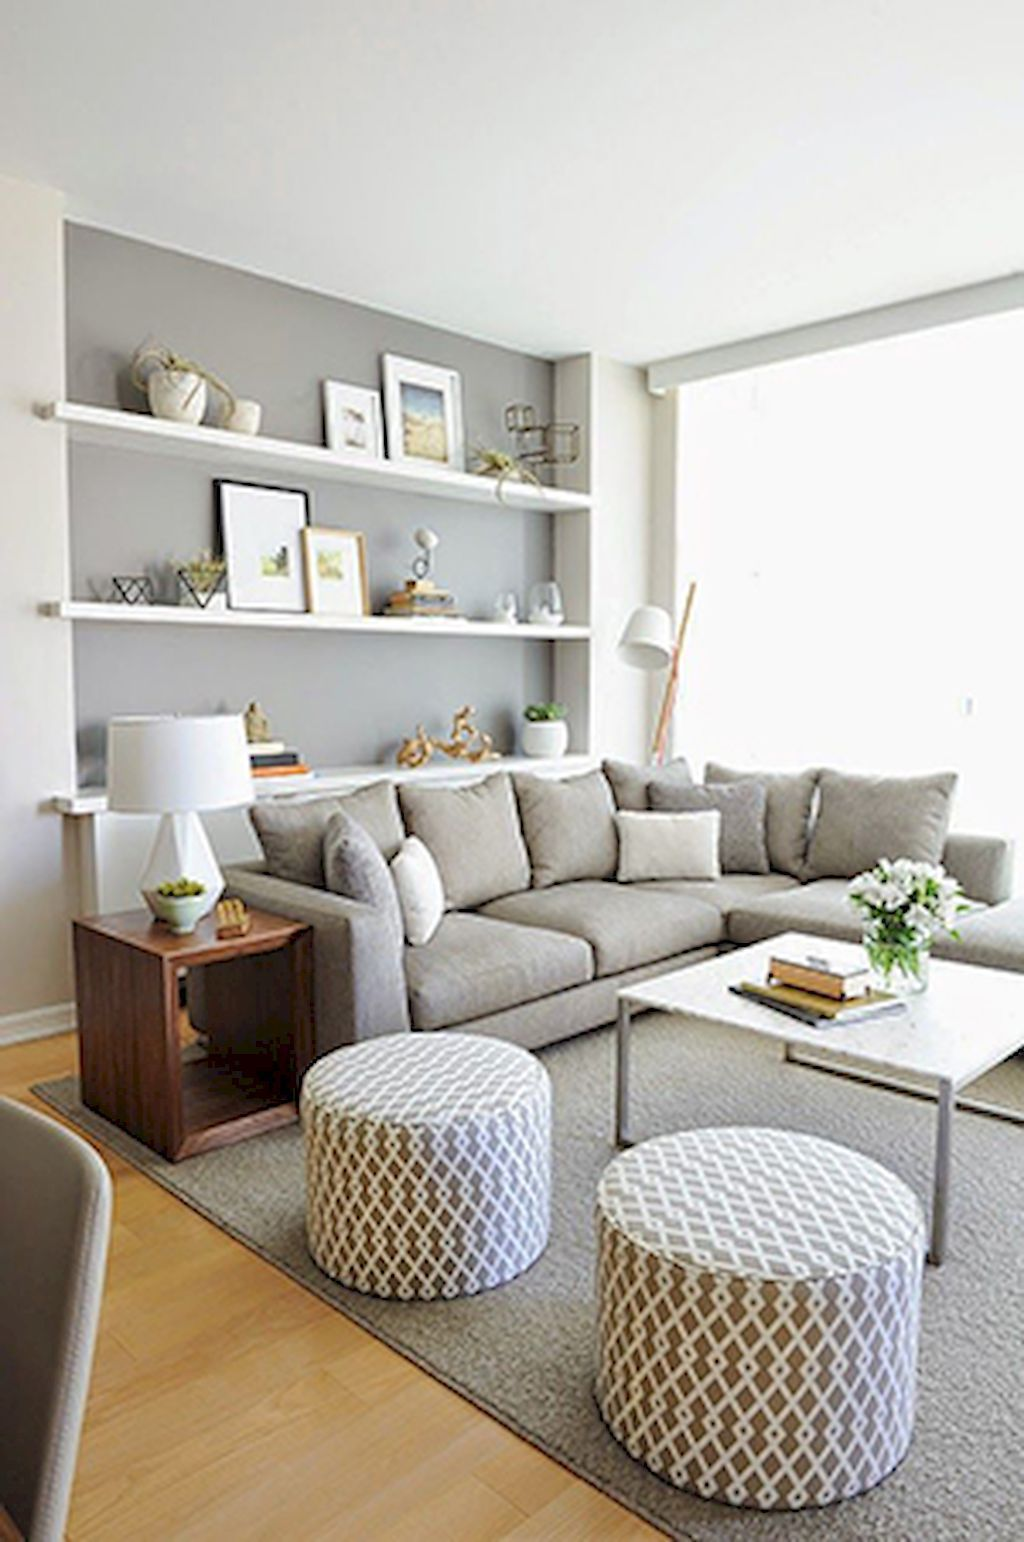 Stunning small living room decor ideas on a budget (3) | #Luxury ...